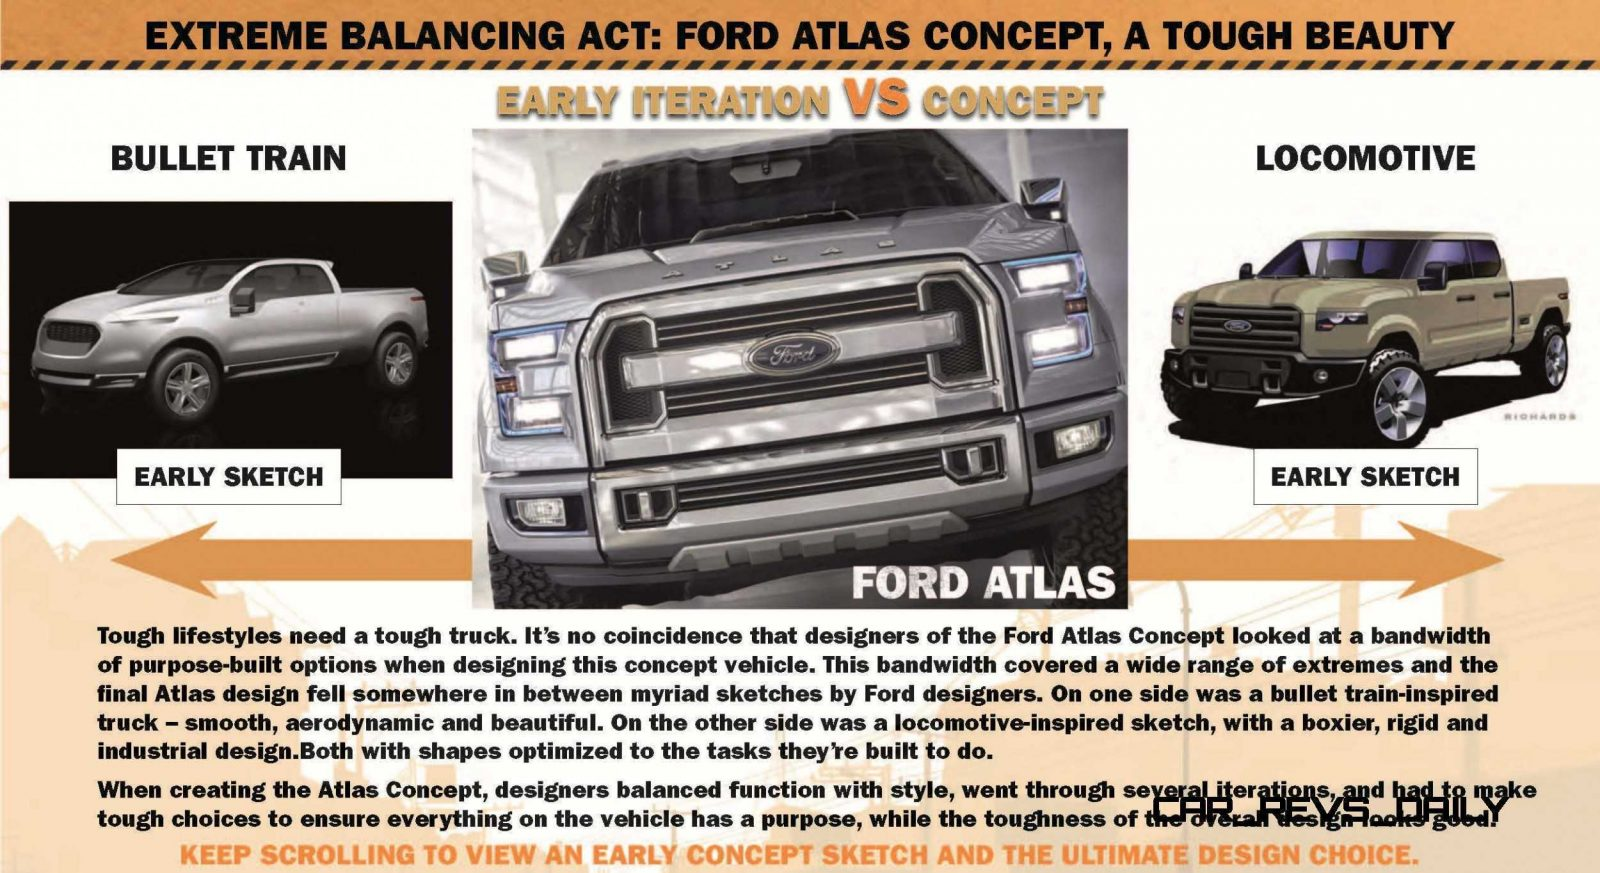 Ford Atlas Concept: Slide 1